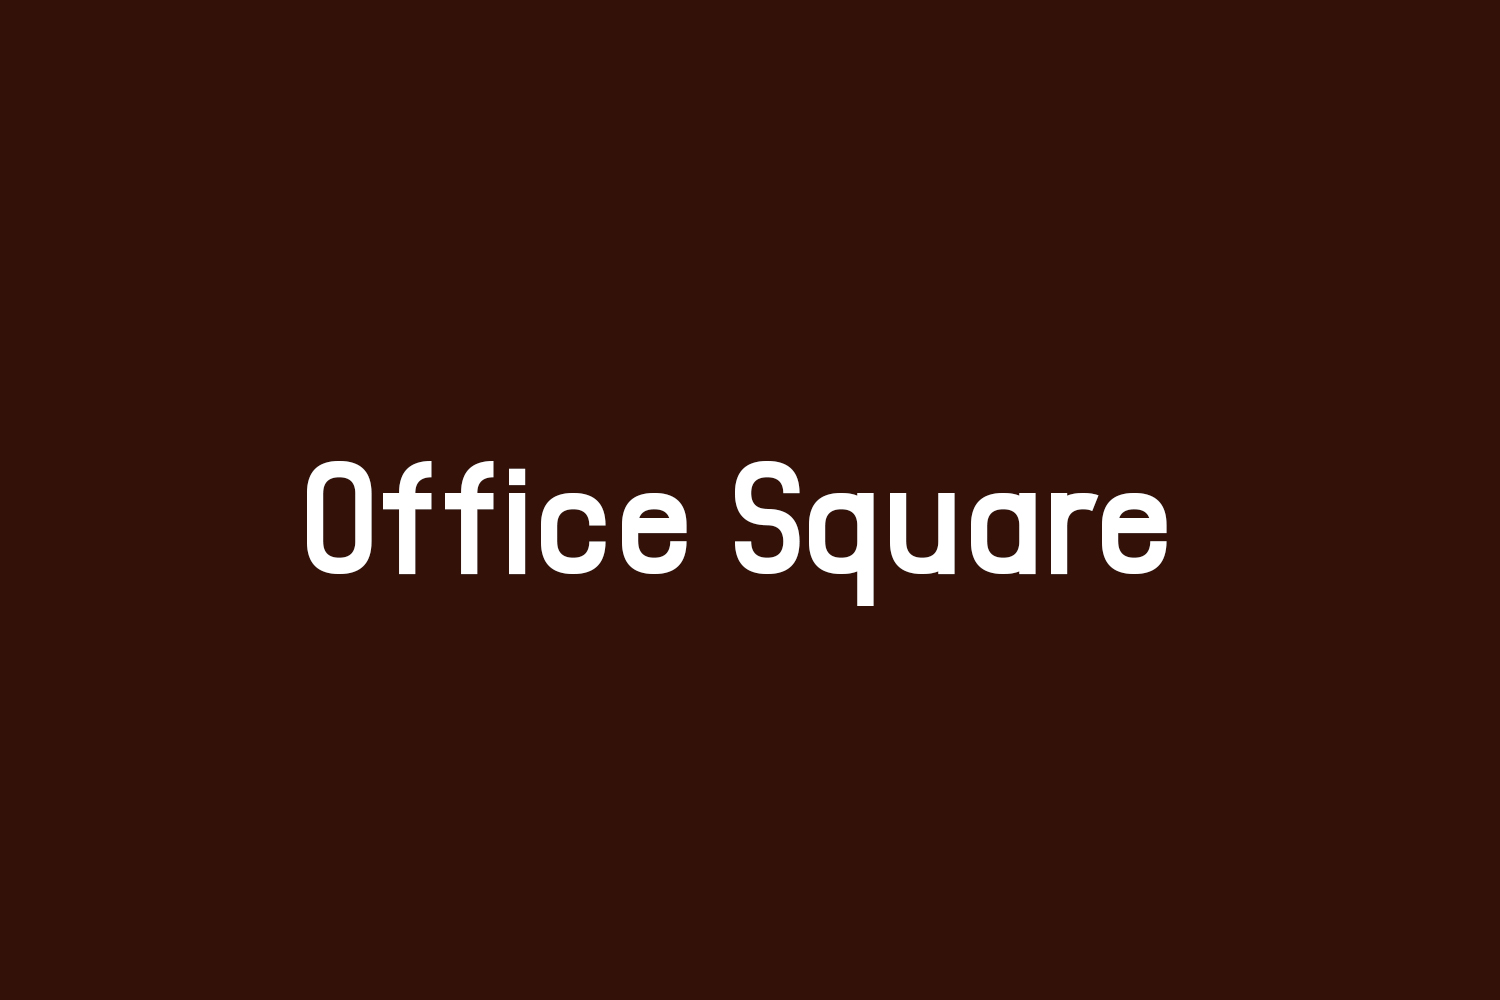 Office Square